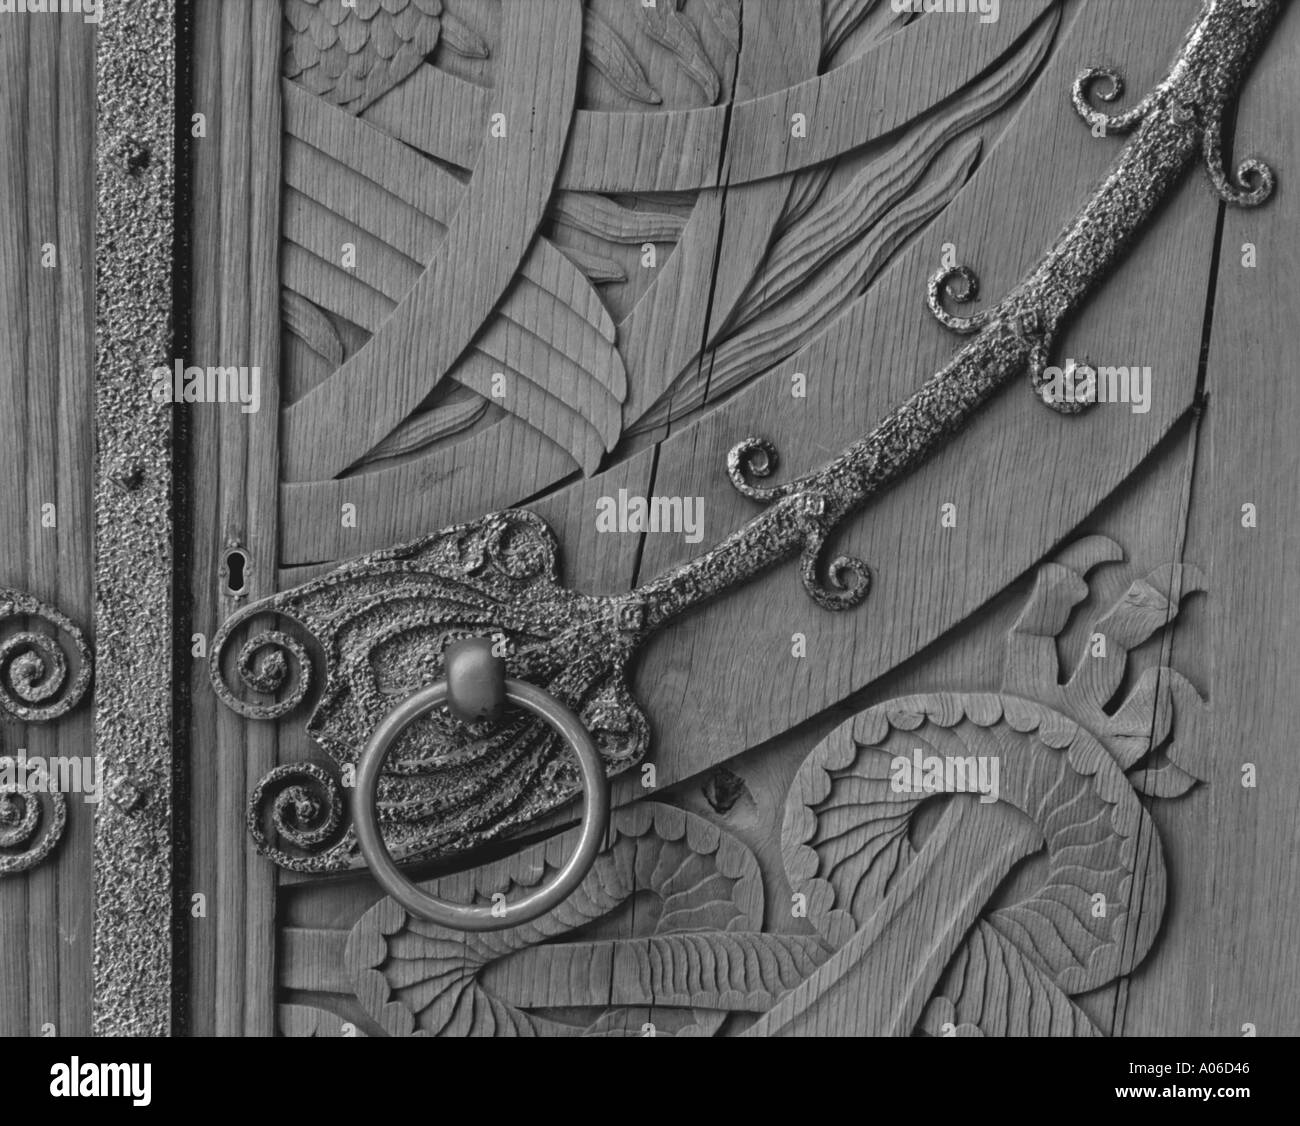 Church door - Stock Image